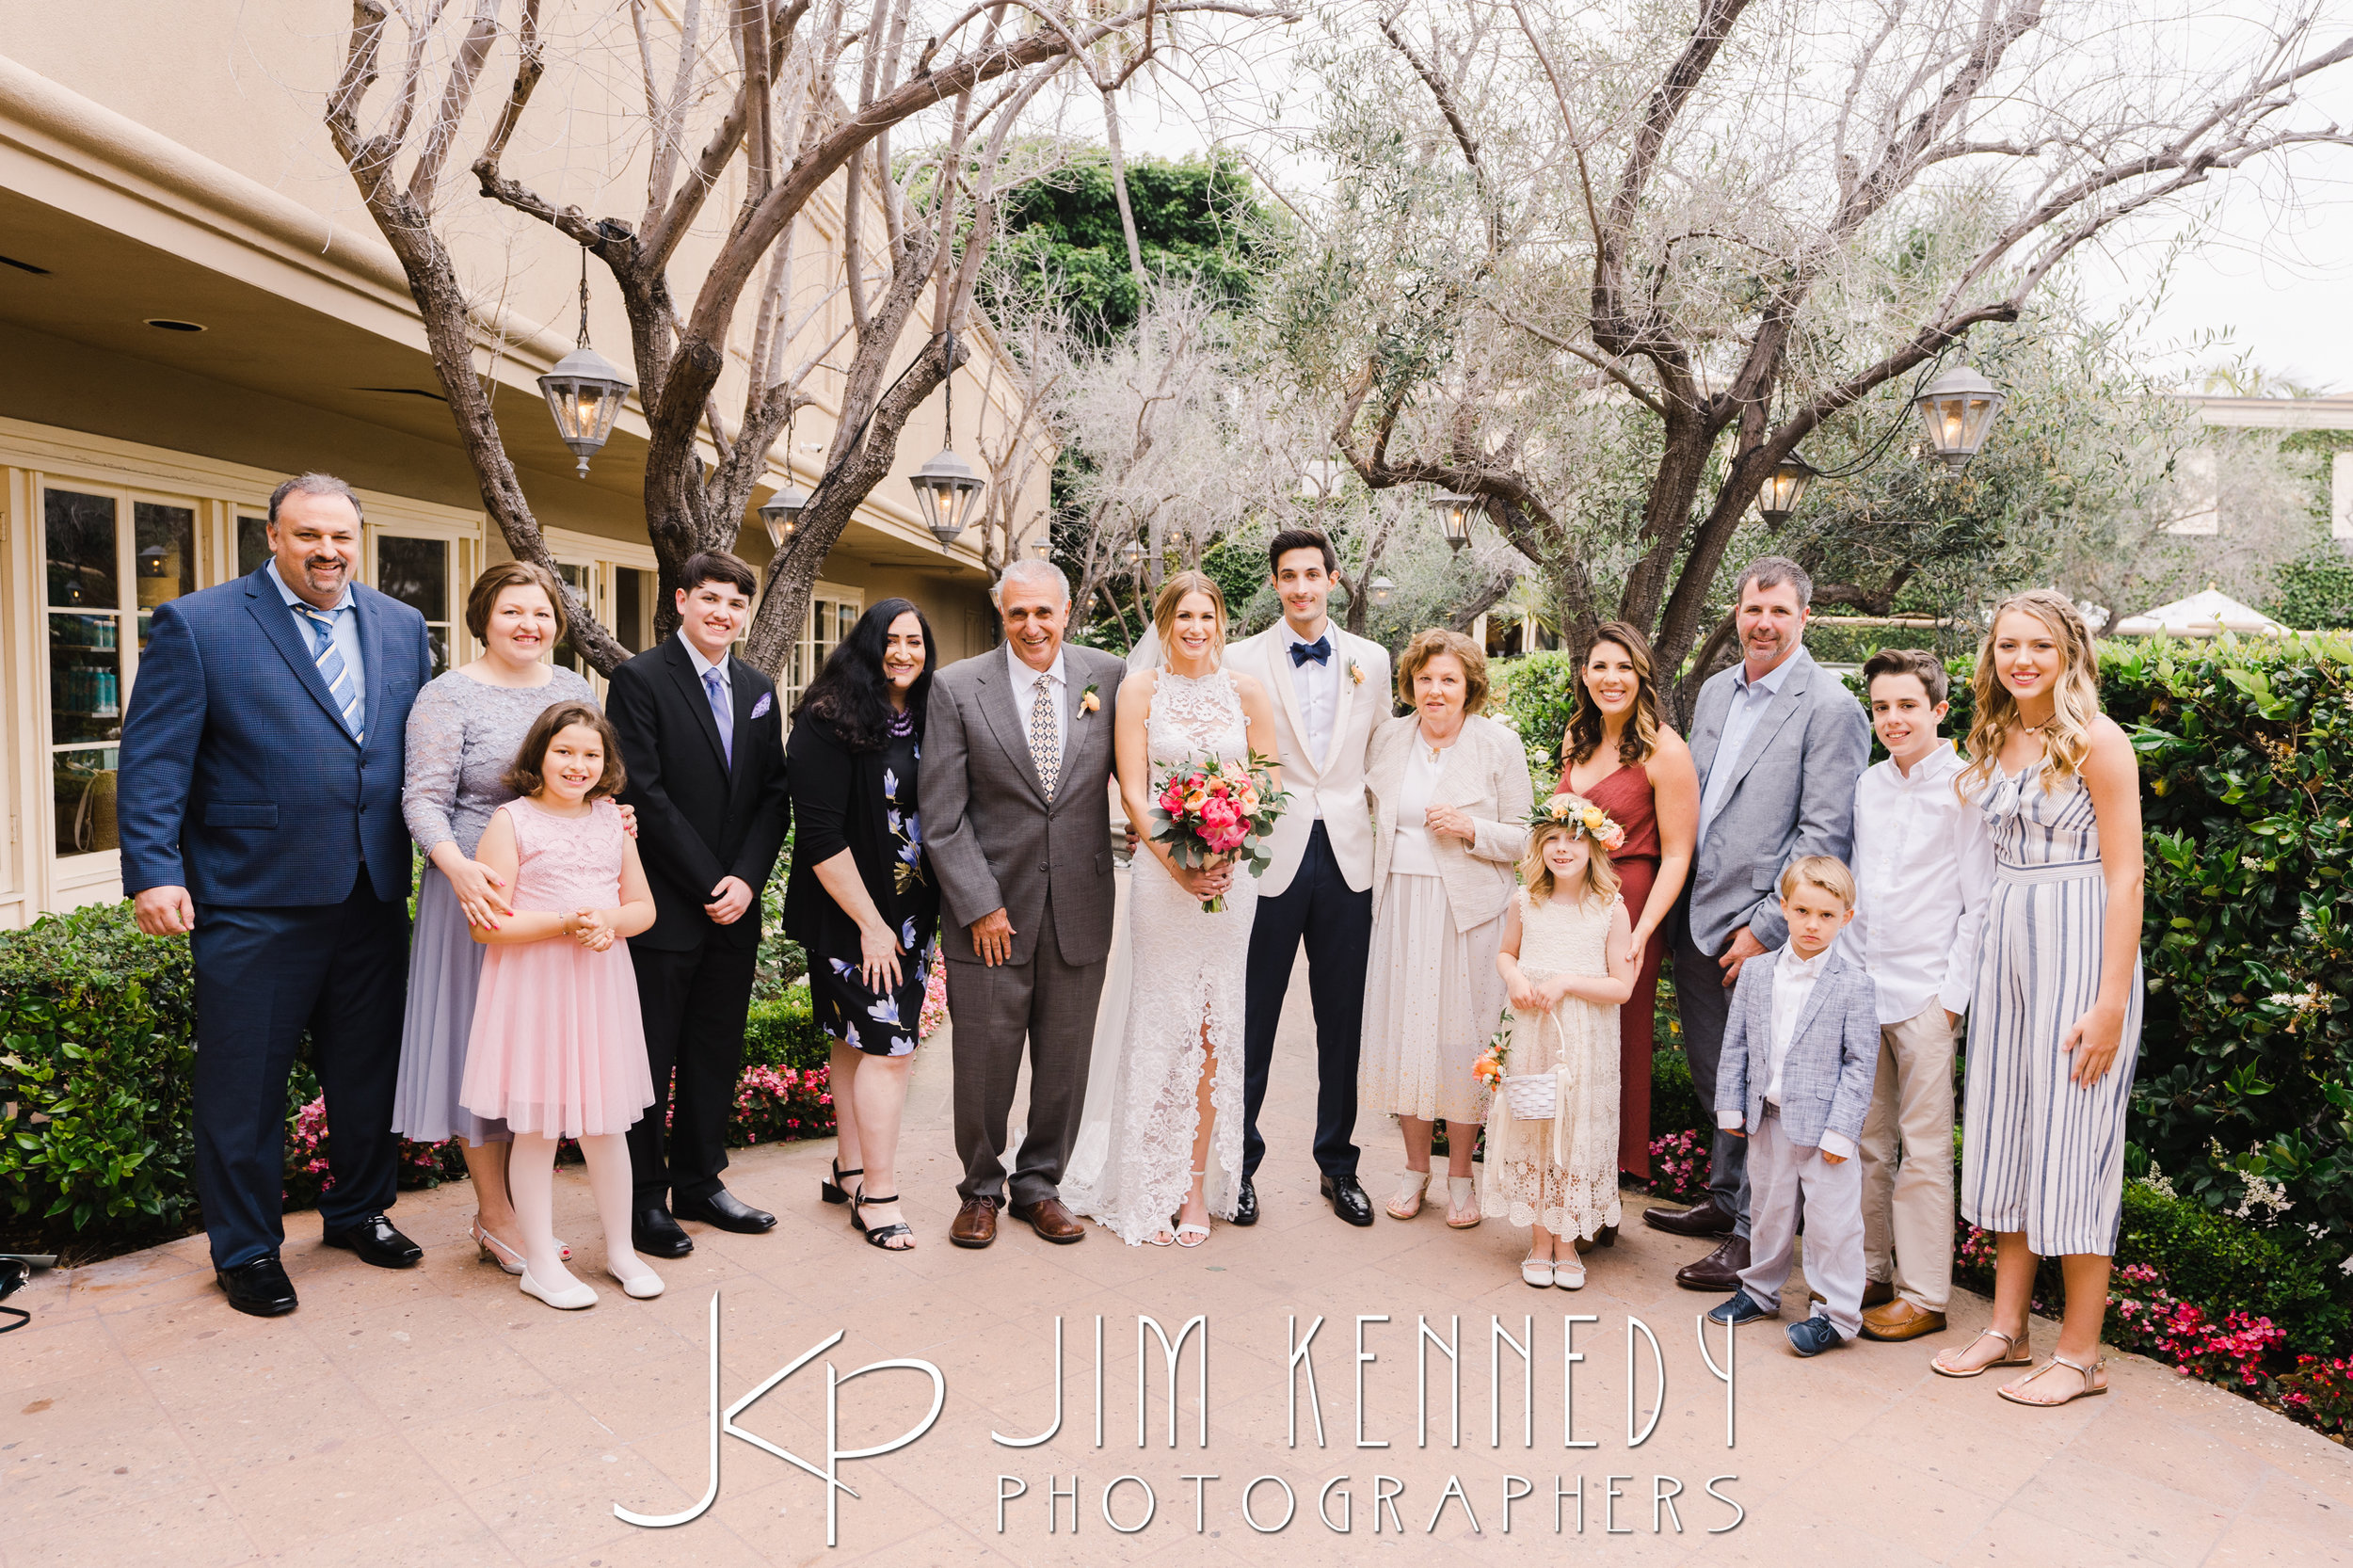 surf-and-sand-wedding-becca-russell__0105.JPG